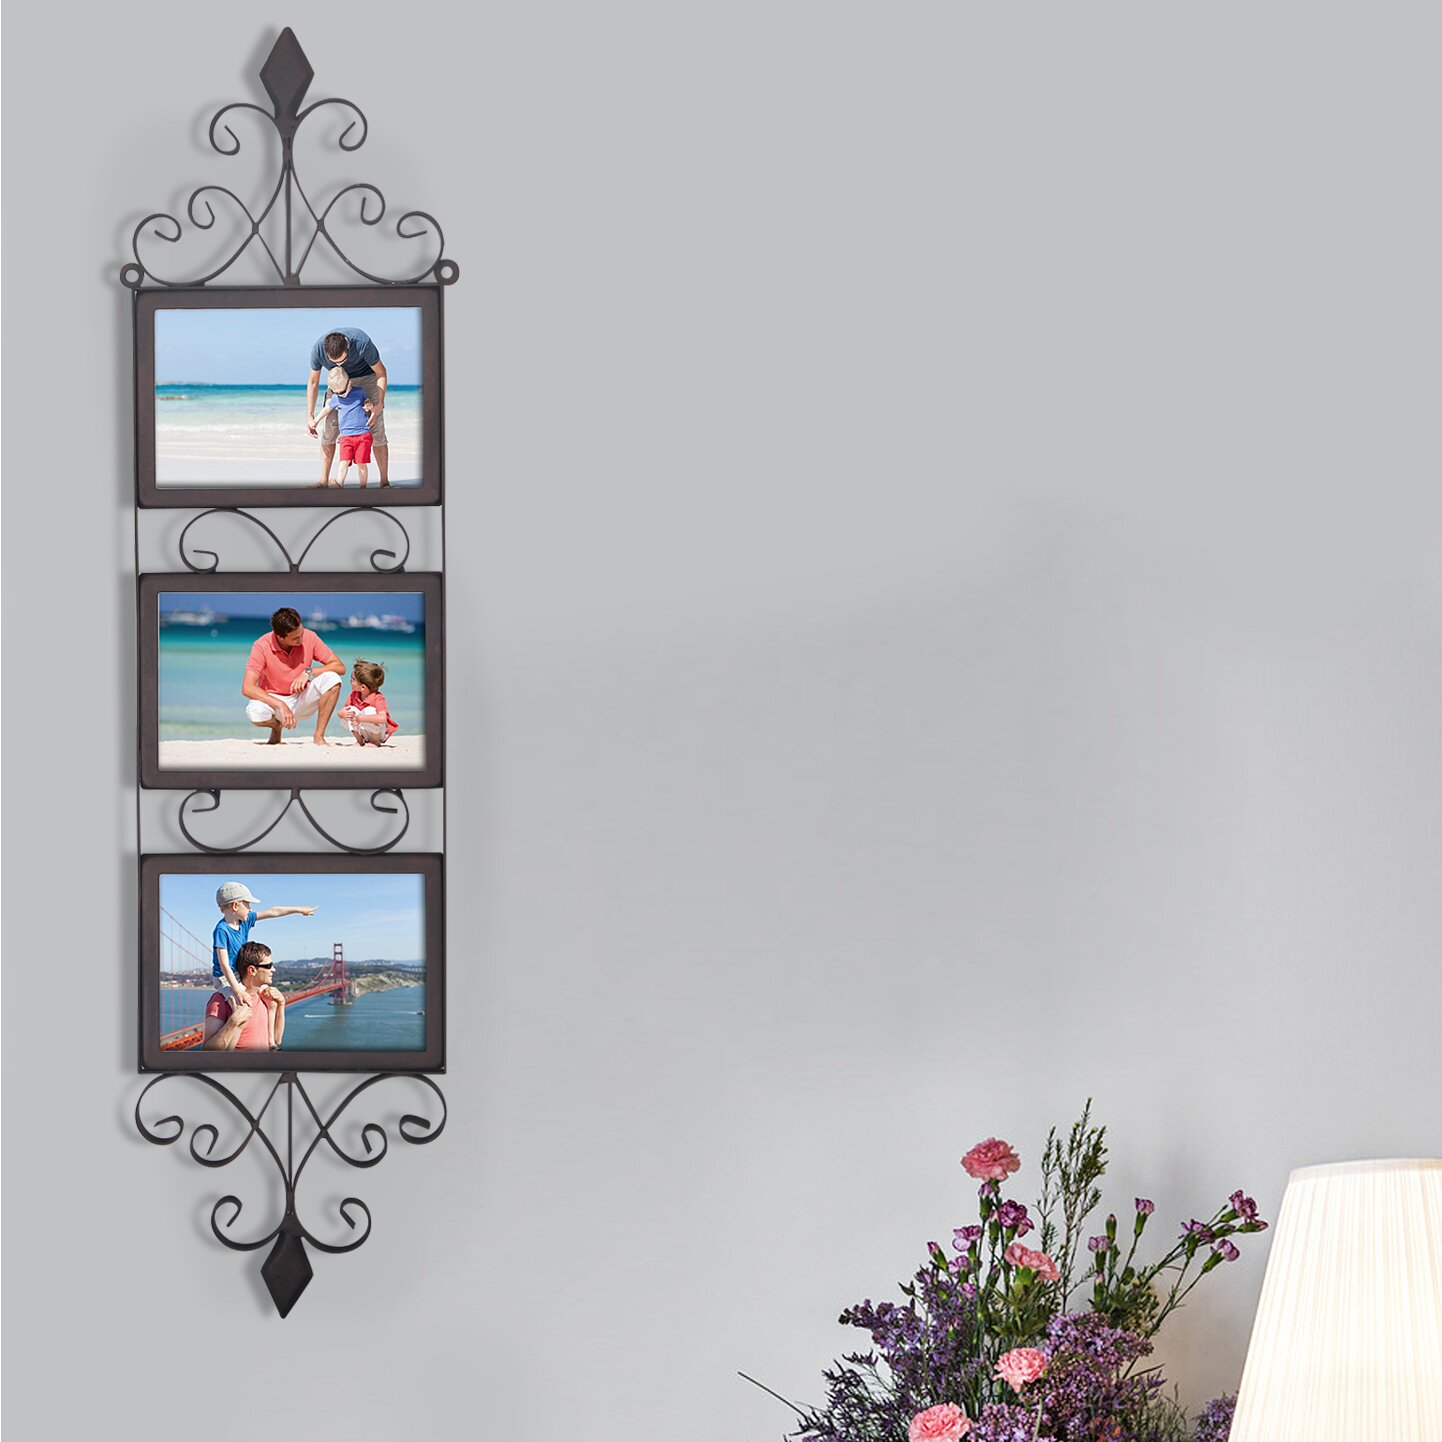 adecotrading 3 opening decorative iron metal wall hanging collage picture frame wayfair. Black Bedroom Furniture Sets. Home Design Ideas